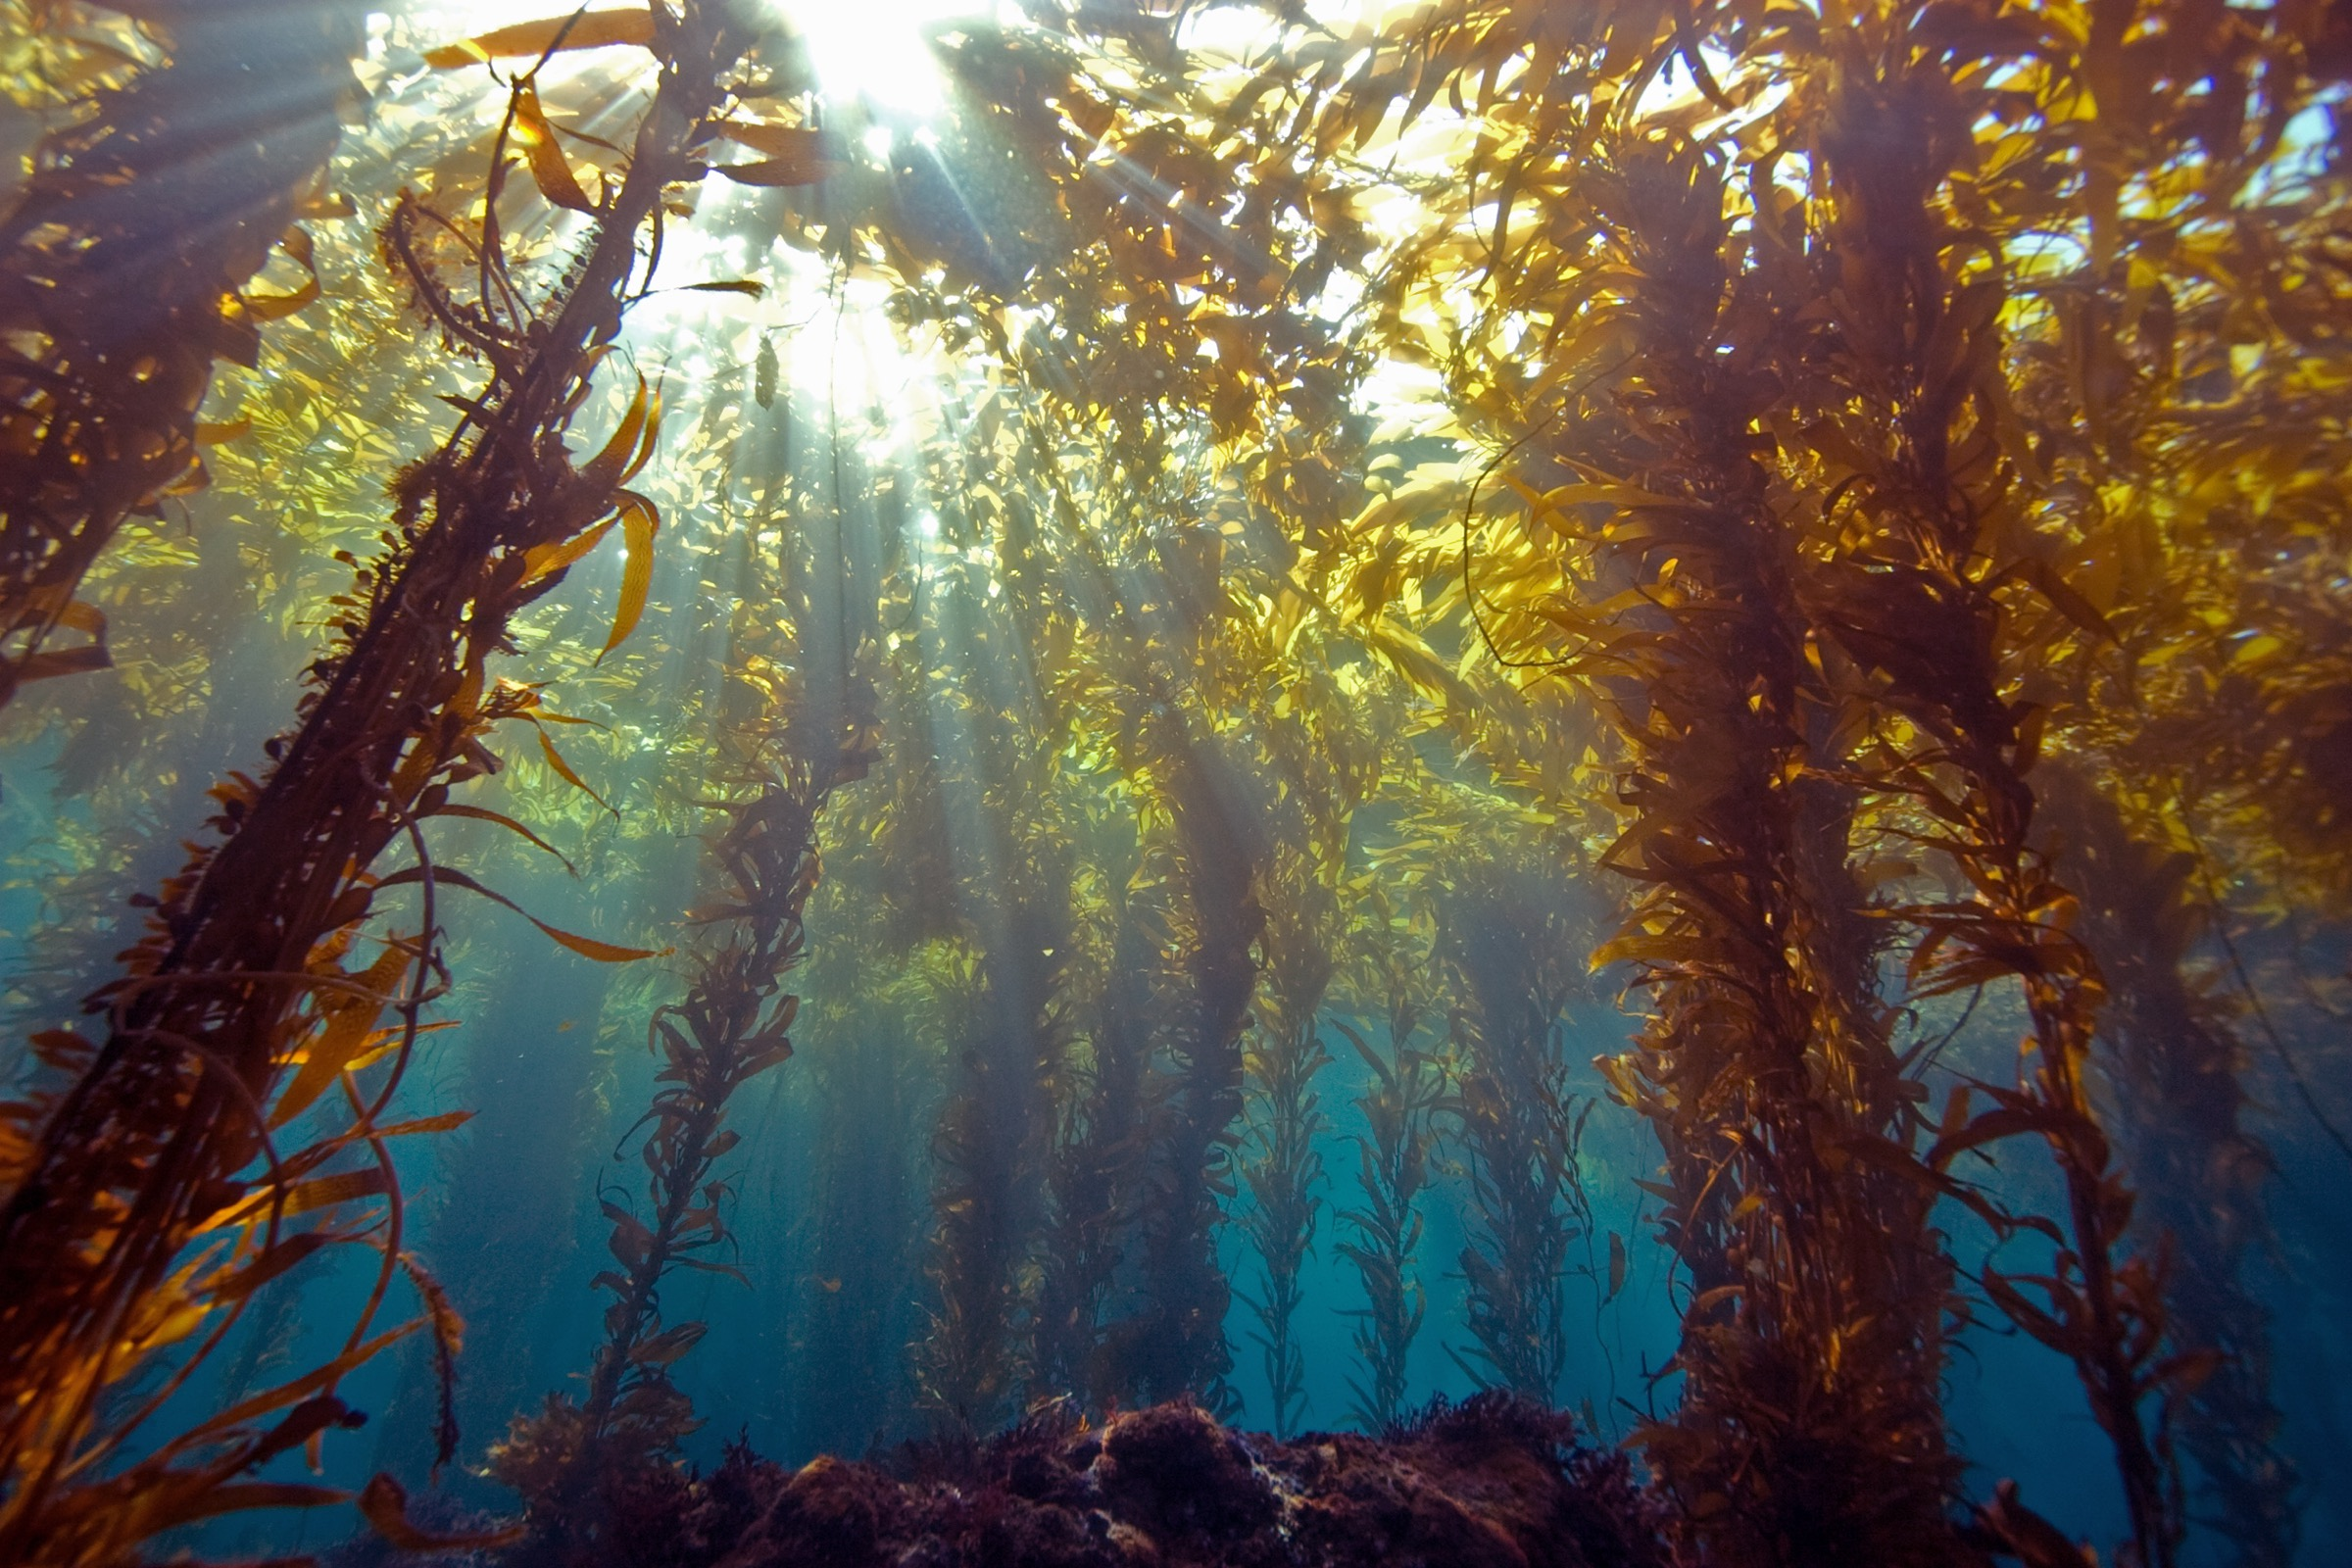 Sunlight streams through a kelp forest near Anacapa Island, off the Southern California coast. Photograph by Douglas Klug/Getty